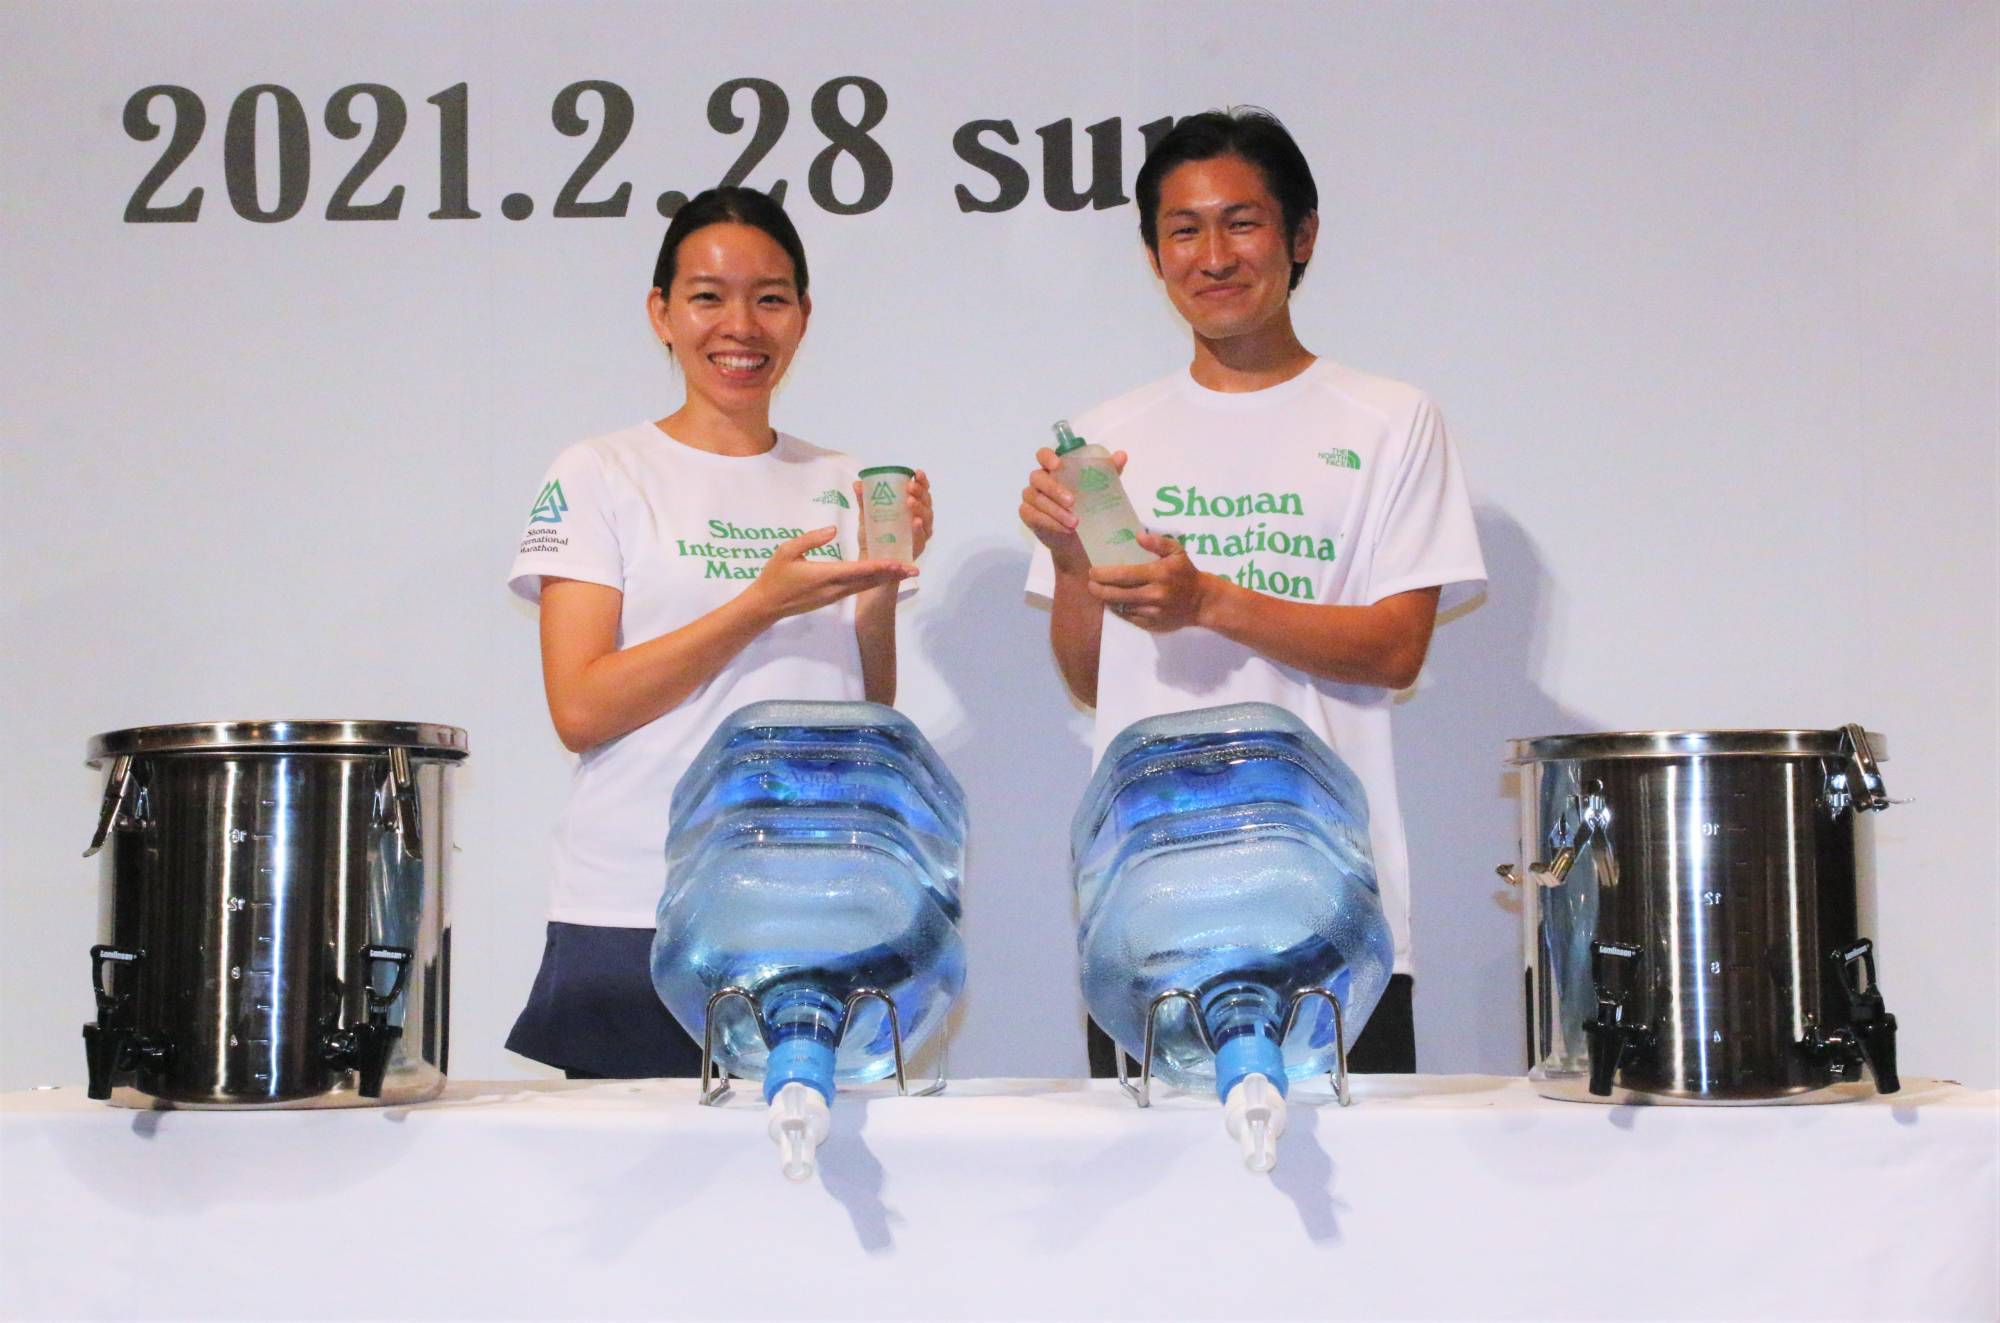 Models pose with the reusable cup and bottle that runners will carry with them during the Shonan International Marathon at a news conference in Tokyo on Tuesday. | KAZ NAGATSUKA